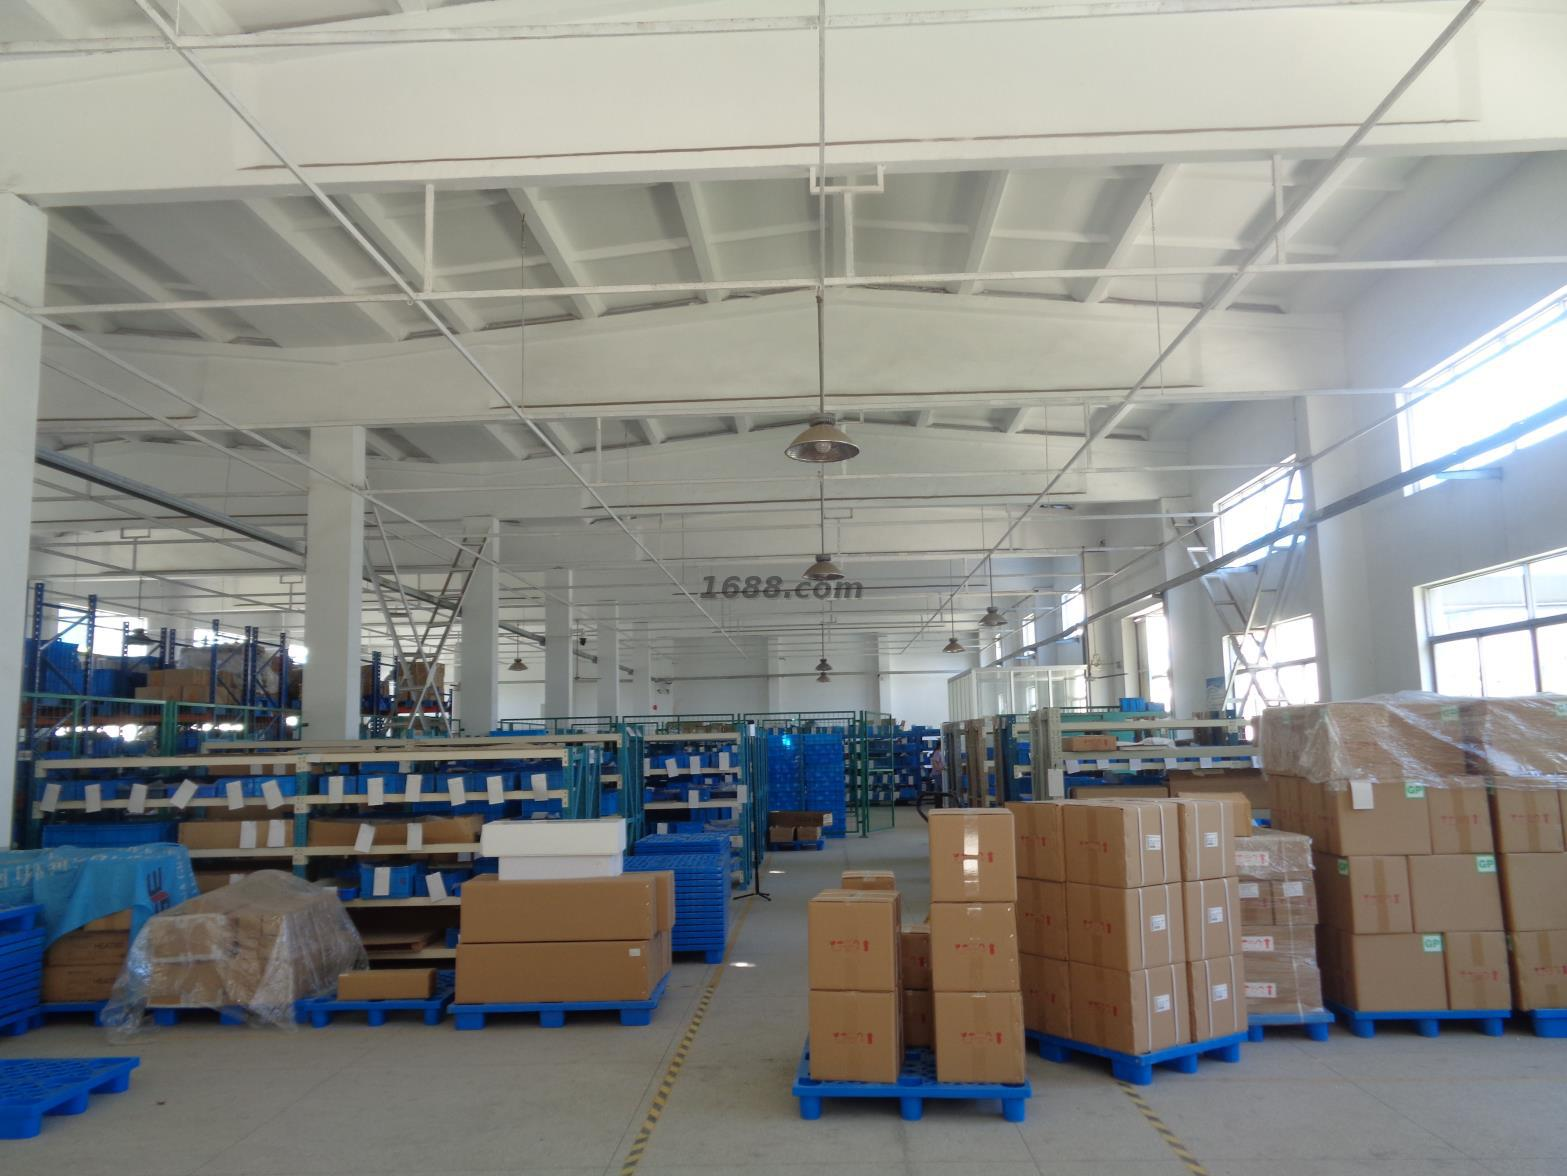 Infrared Heating Lamp Warehouse